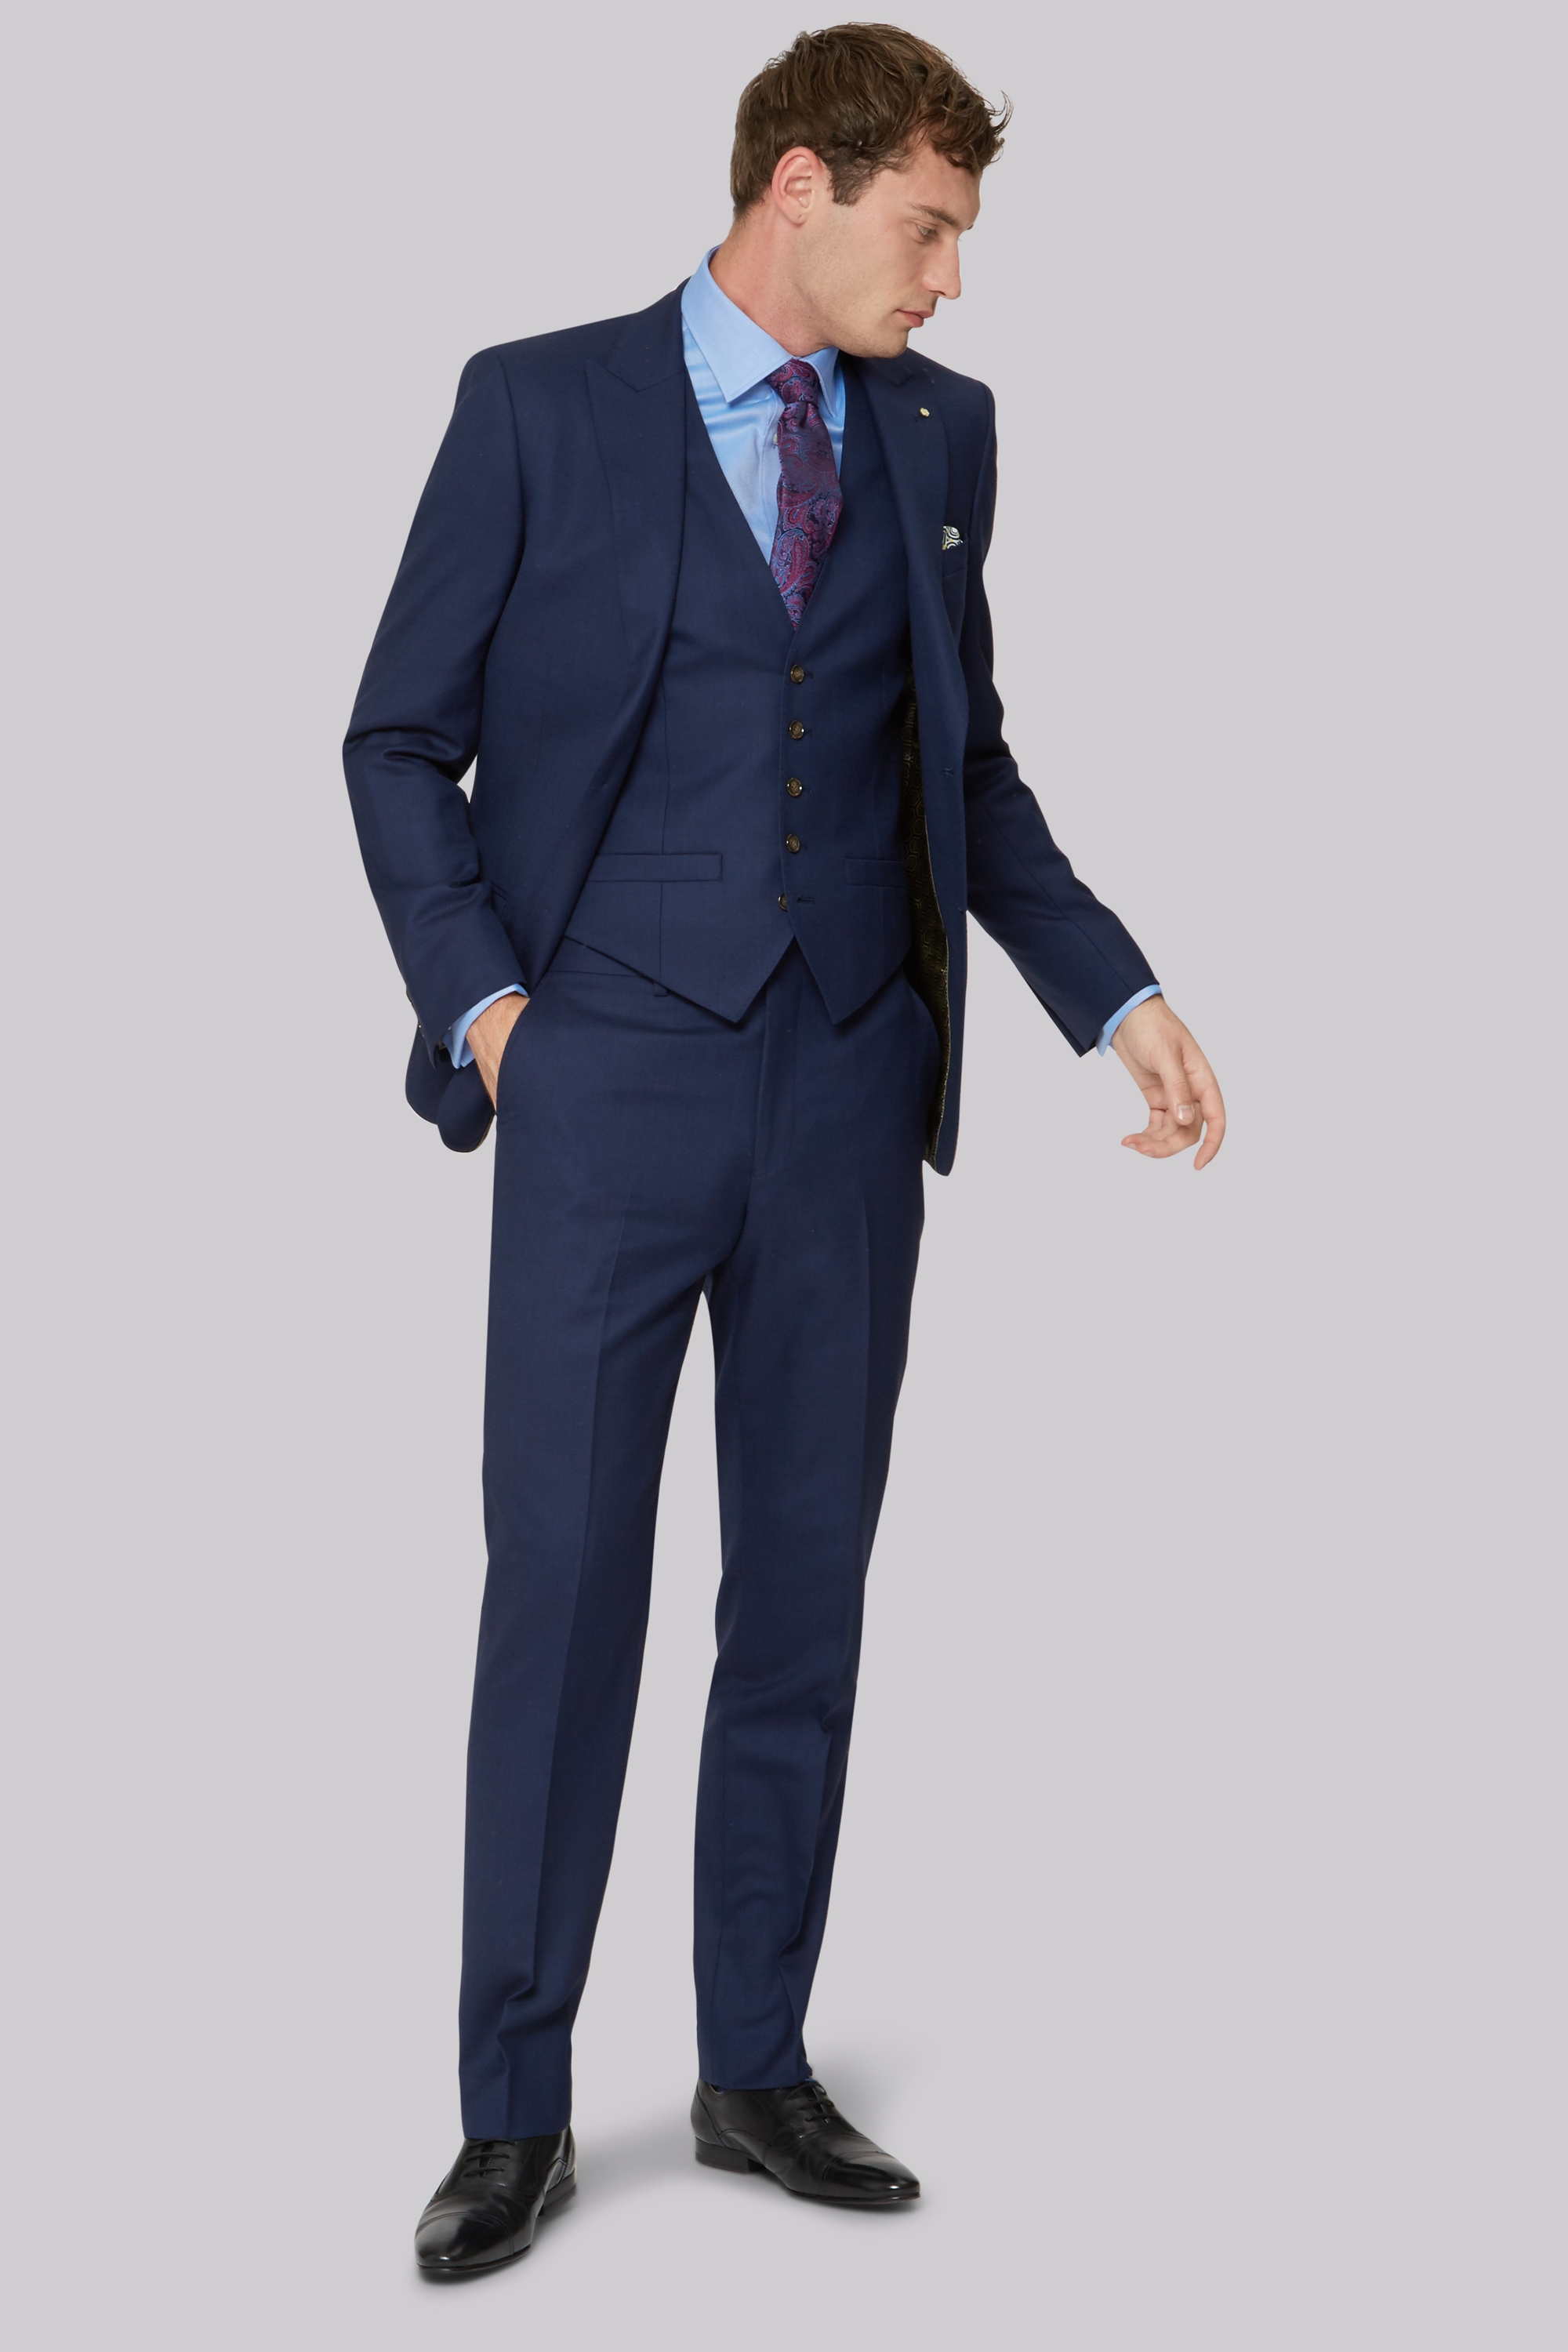 Ted Baker Suits, Shirts & more | Moss Bros